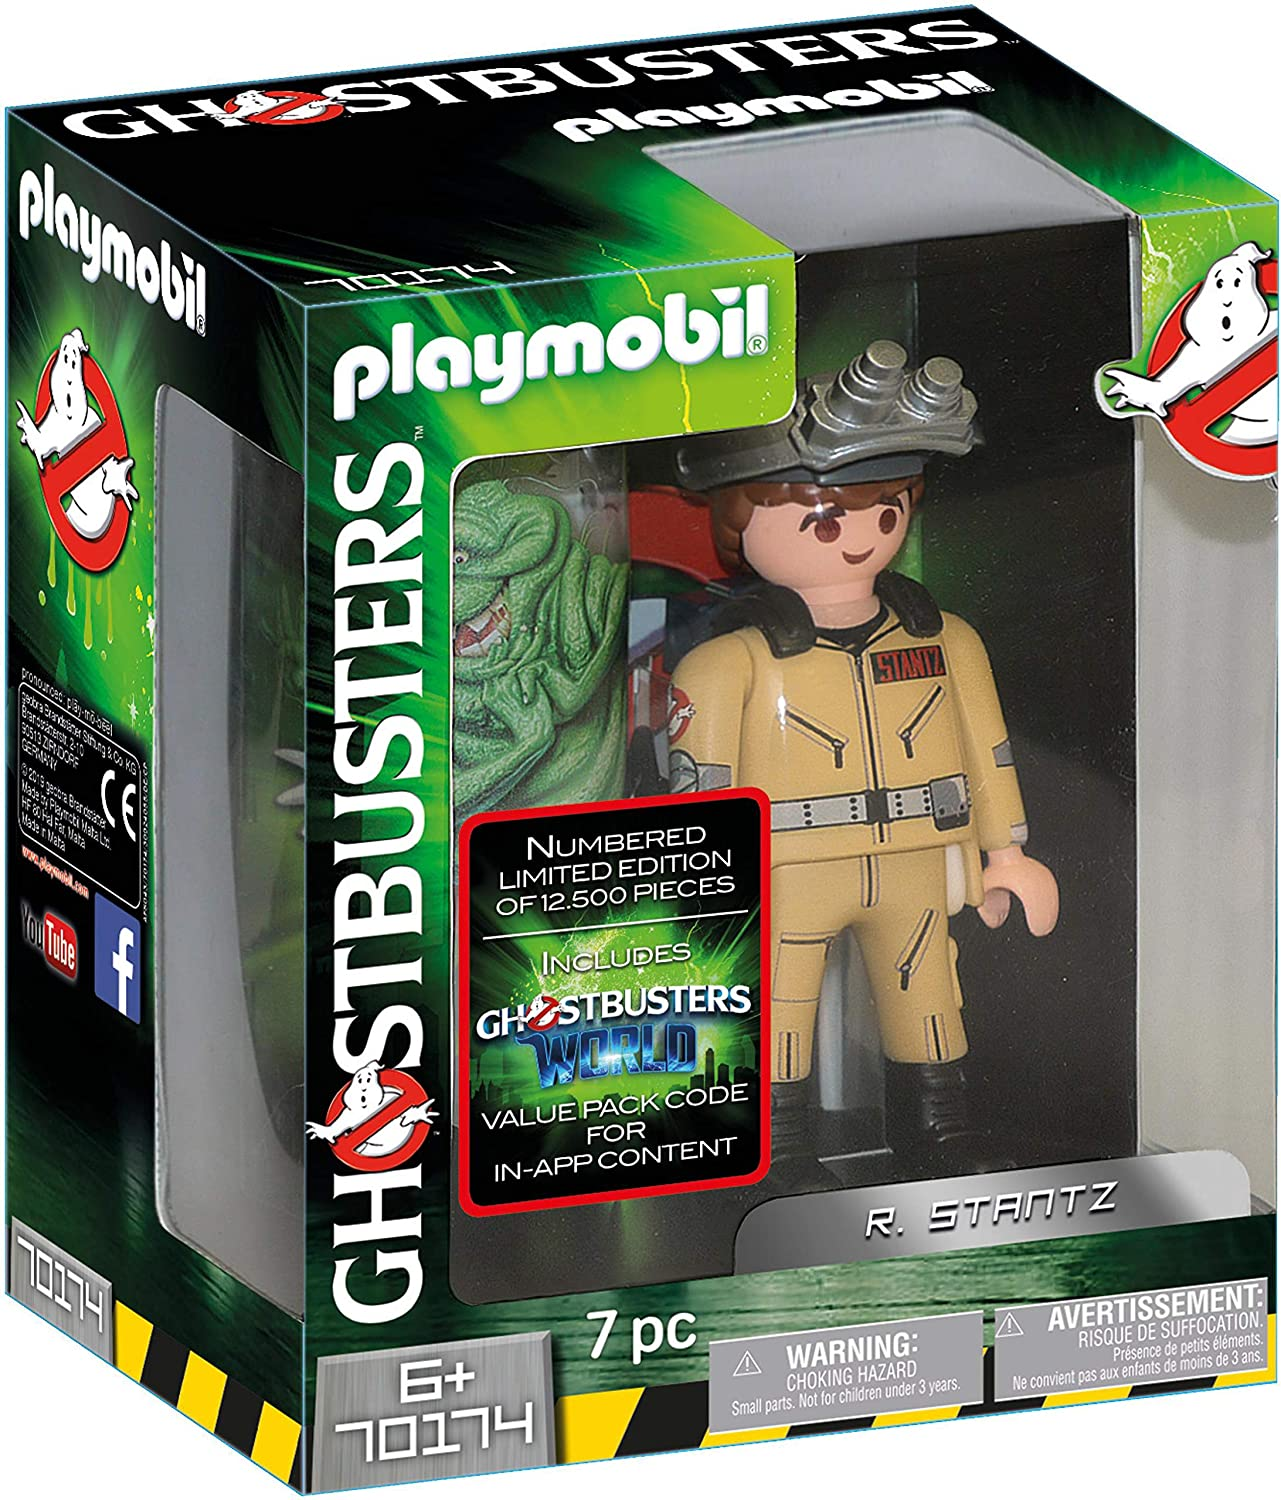 Playmobil 70174 Ghostbusters Collector's Edition R. Stantz